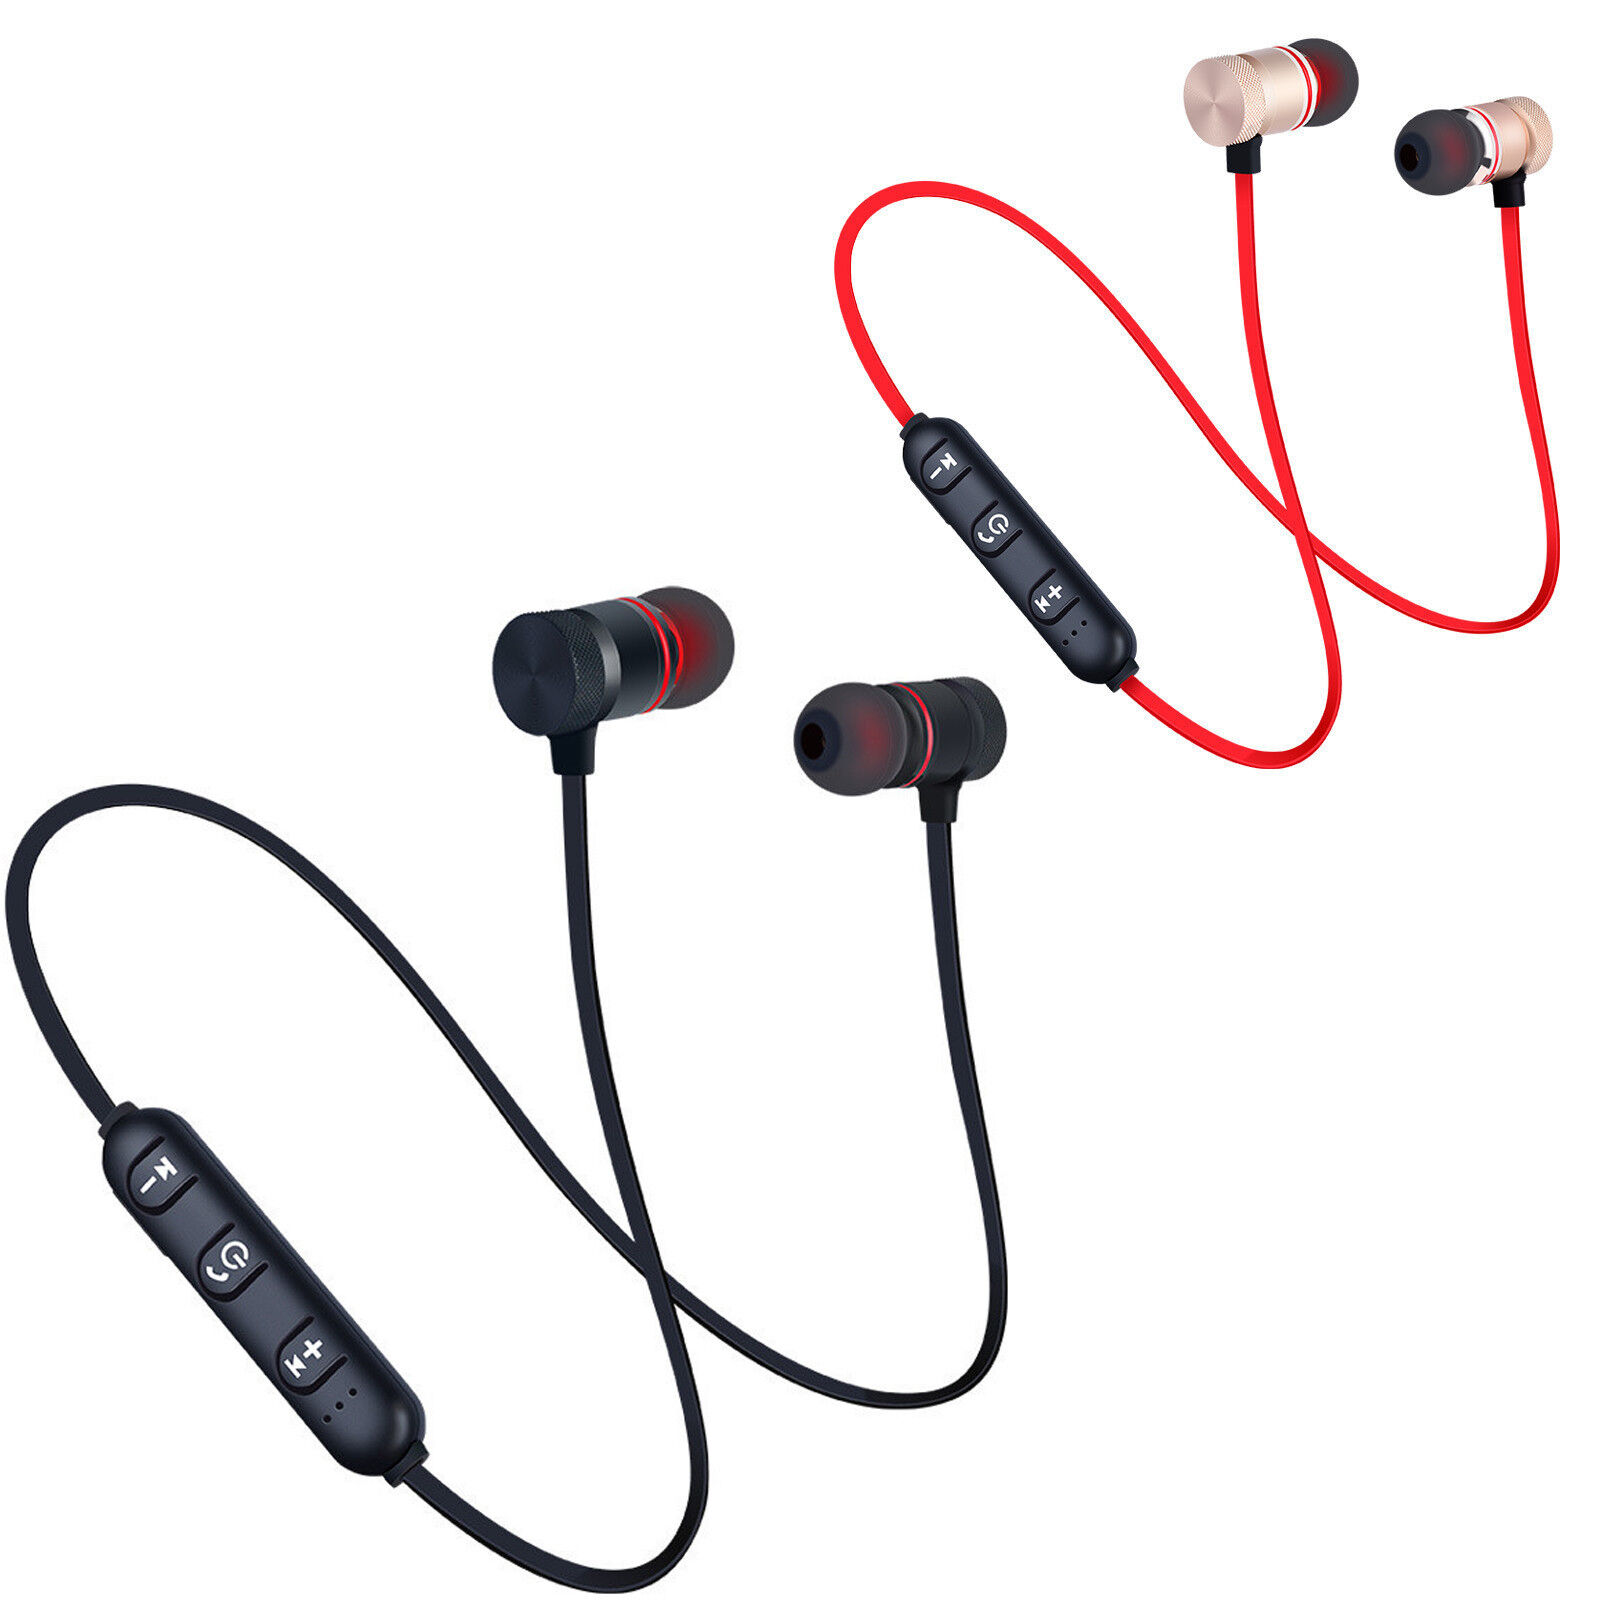 Wireless Twin Bluetooth Earbuds In-Ear Stereo Earphones Sport Headset Headphones